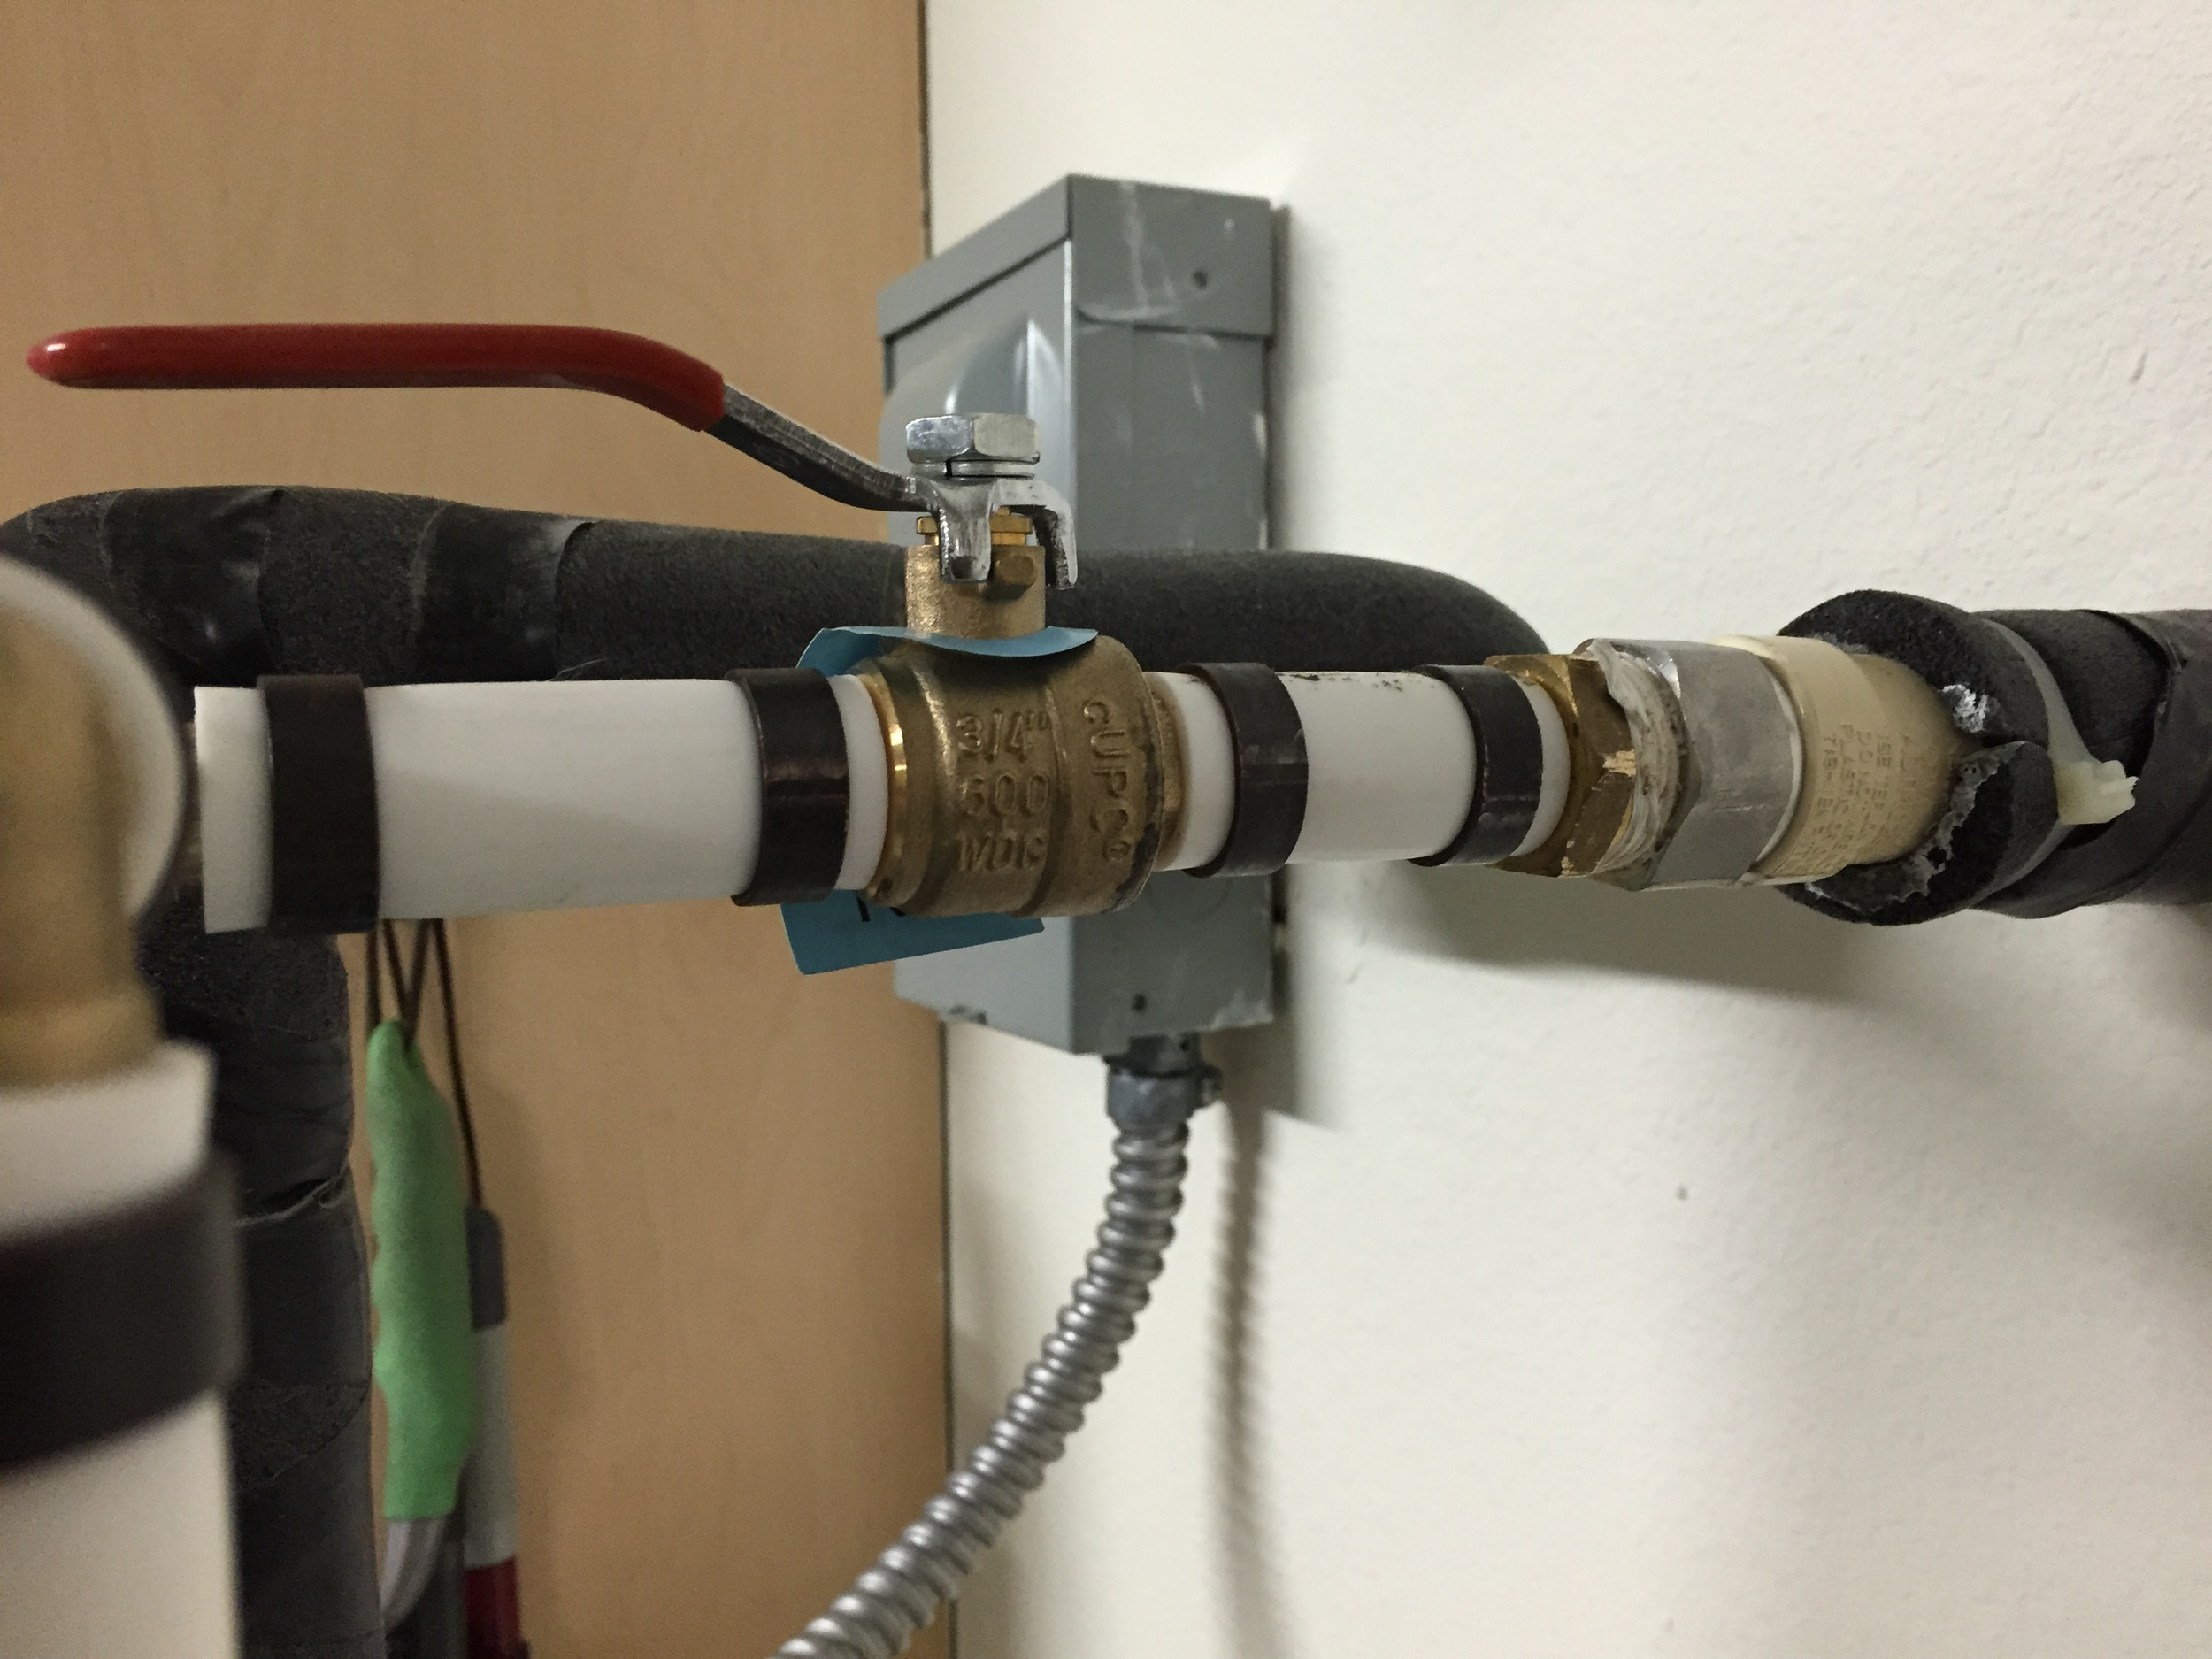 Pex pipe that we put in because the cpvc ball valve had failed.  With pex we use brass fittings and valves and copper crimp rings.